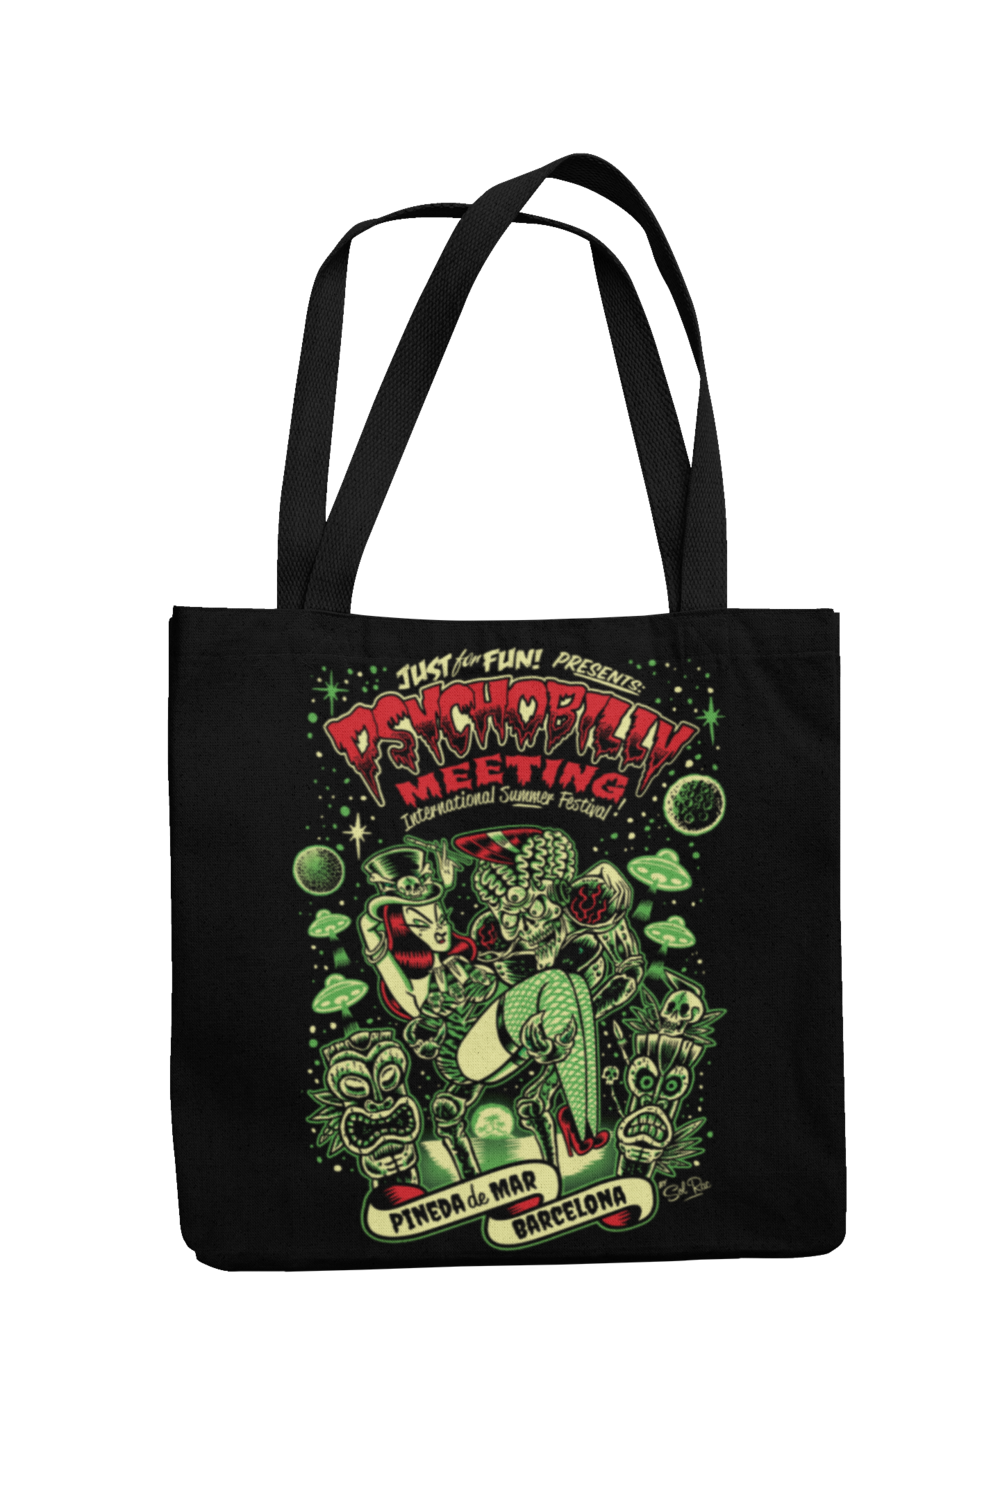 Cotton Bag Psychobilly meeting design by Solrac 2019